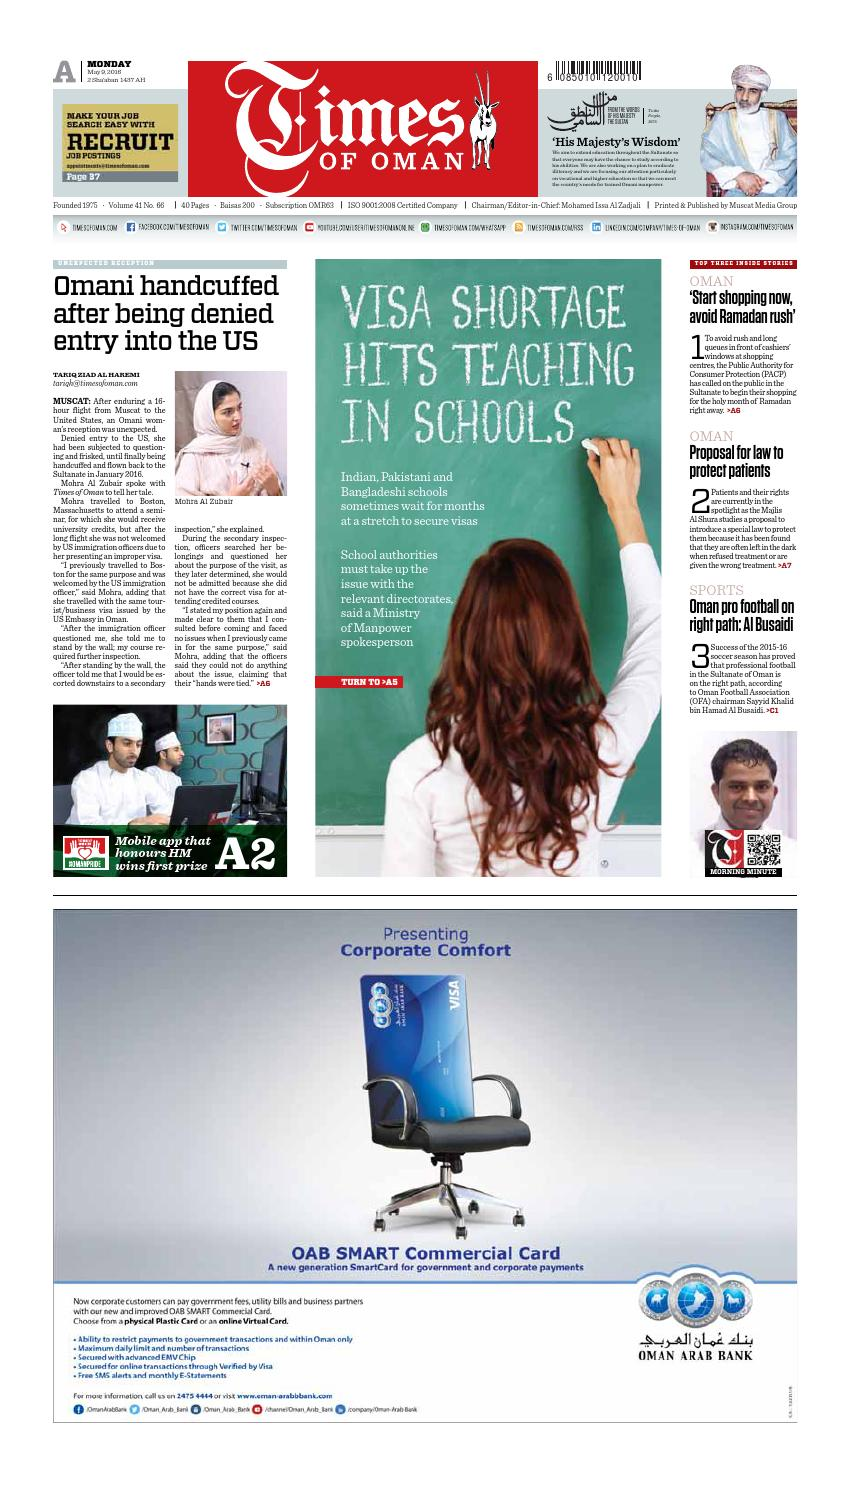 Times of Oman - May 9, 2016 by Muscat Media Group - issuu